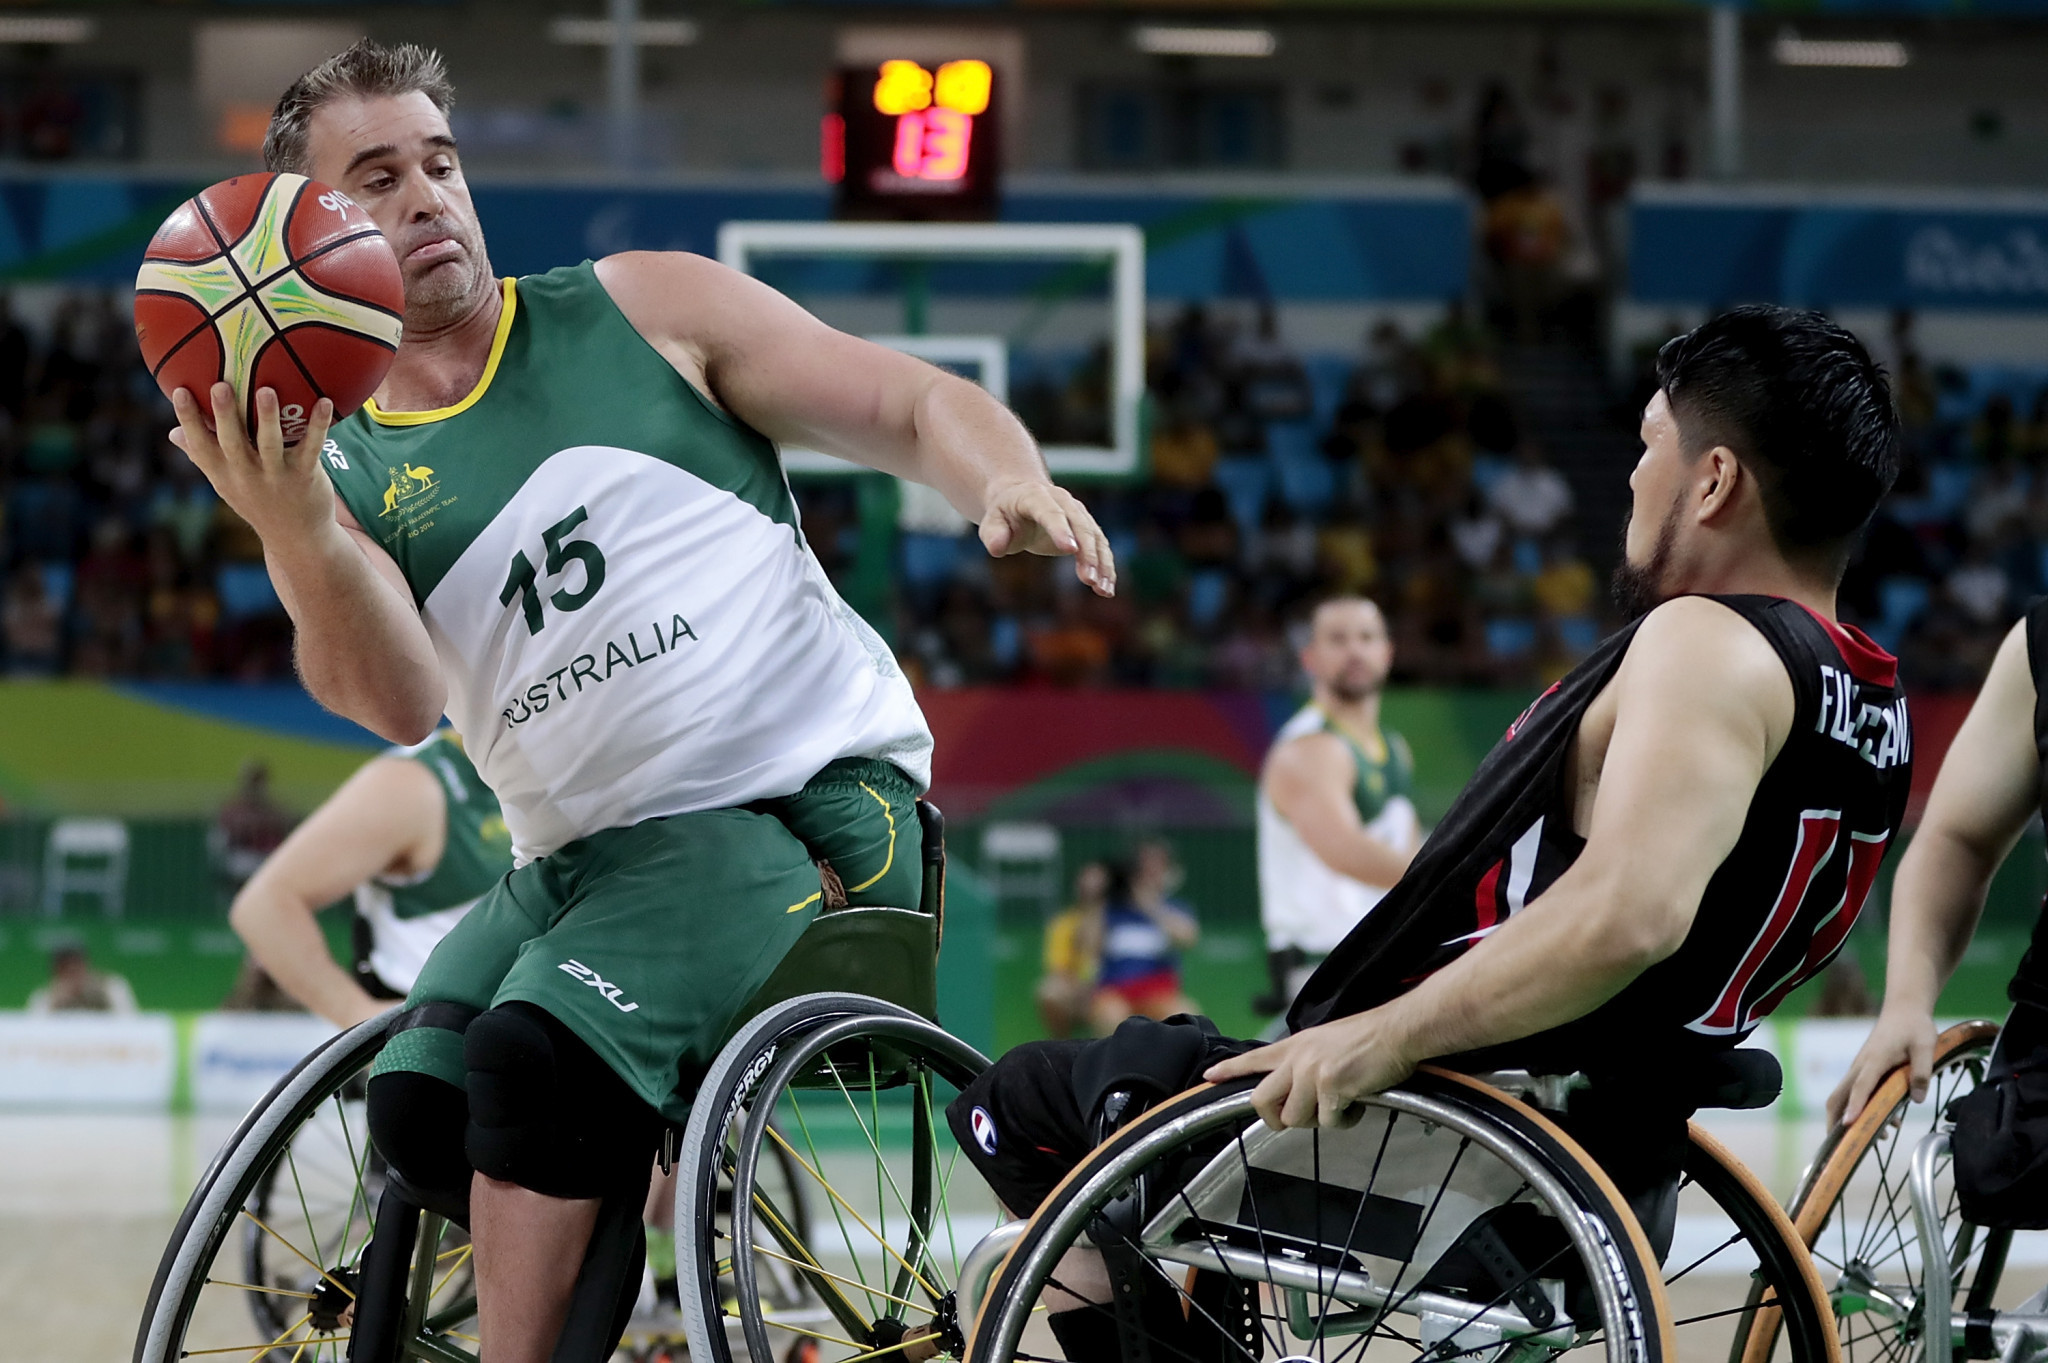 The Rollers won the IWBF World Championships in 2010 and 2014 ©Getty Images